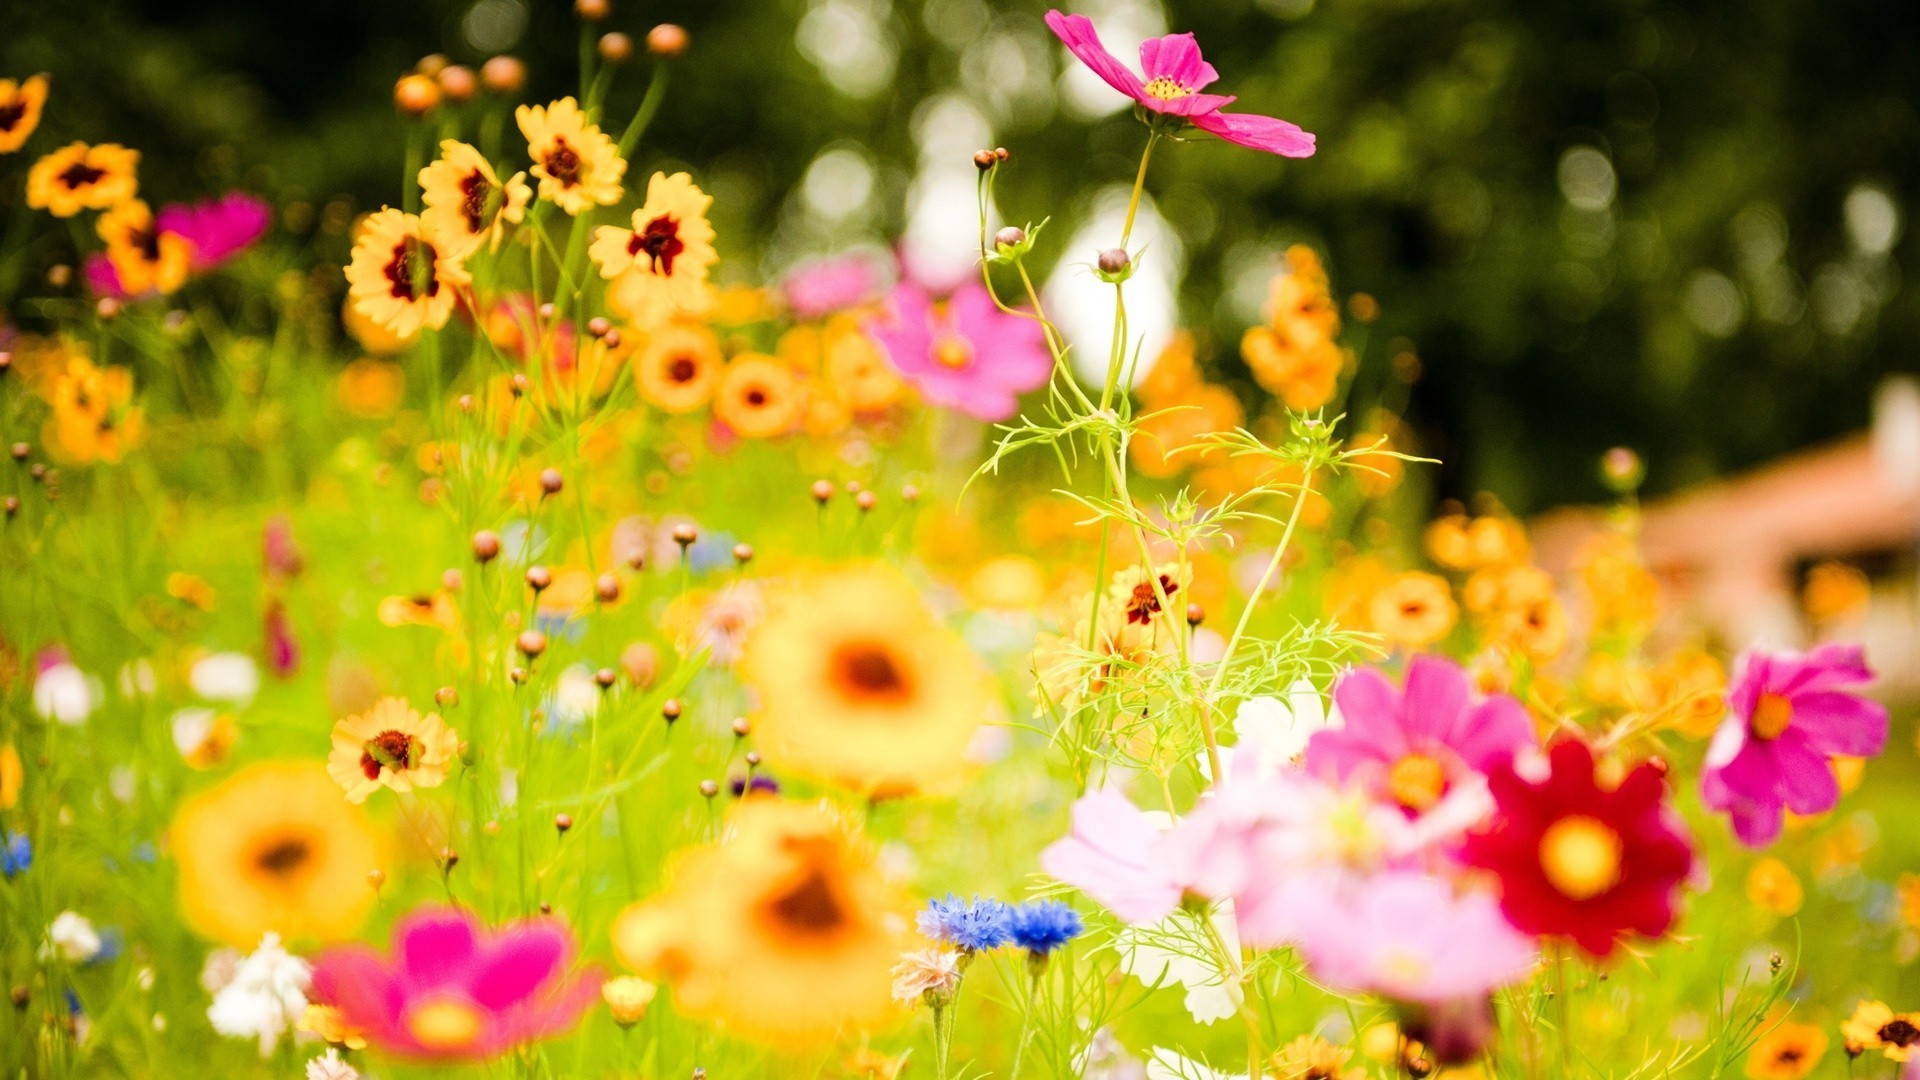 1920x1080 Pics Photos - Colorful Flowers Wallpapers In 1366 768 Resolution 333086